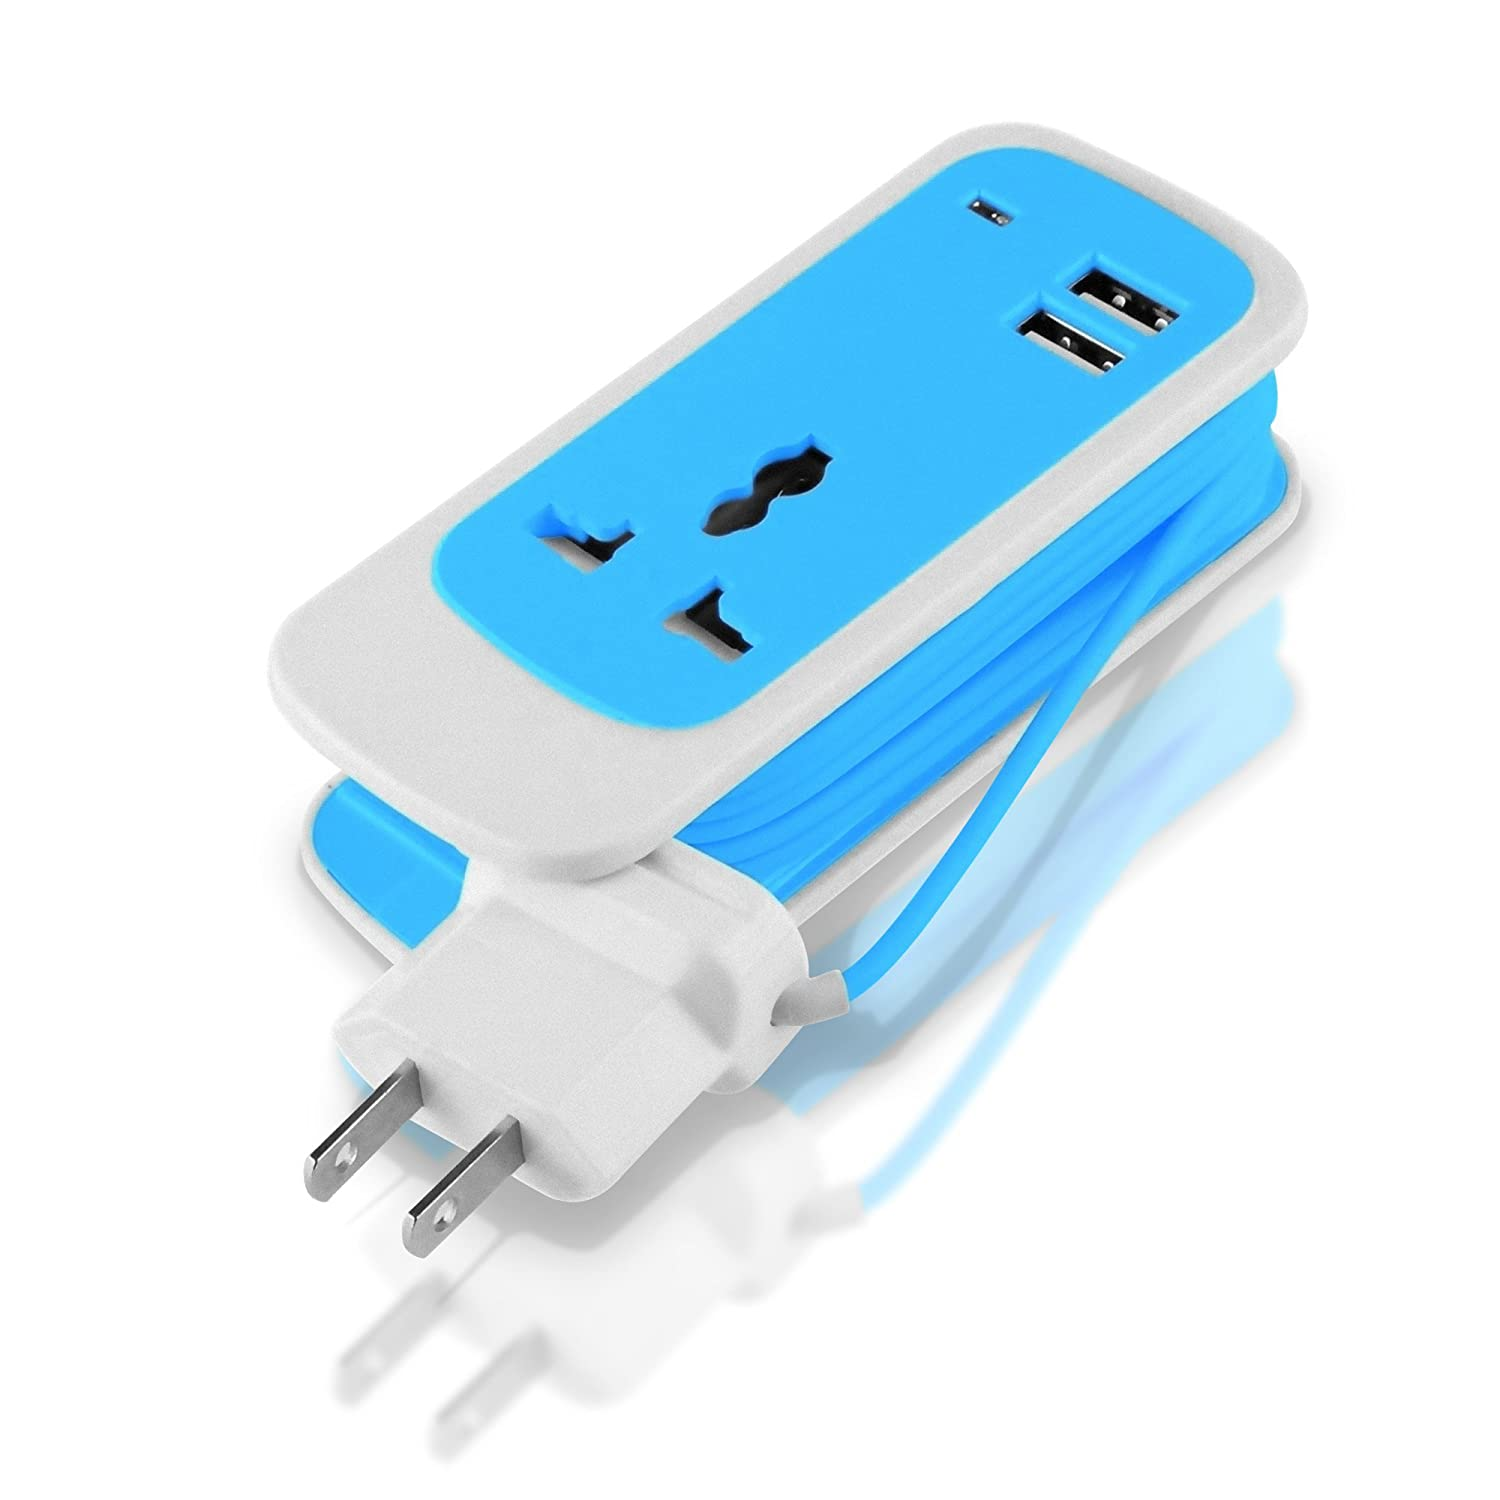 Amazon.com: 3-in-1 Portable Travel Charger Extension Cord 2-Port USB ...